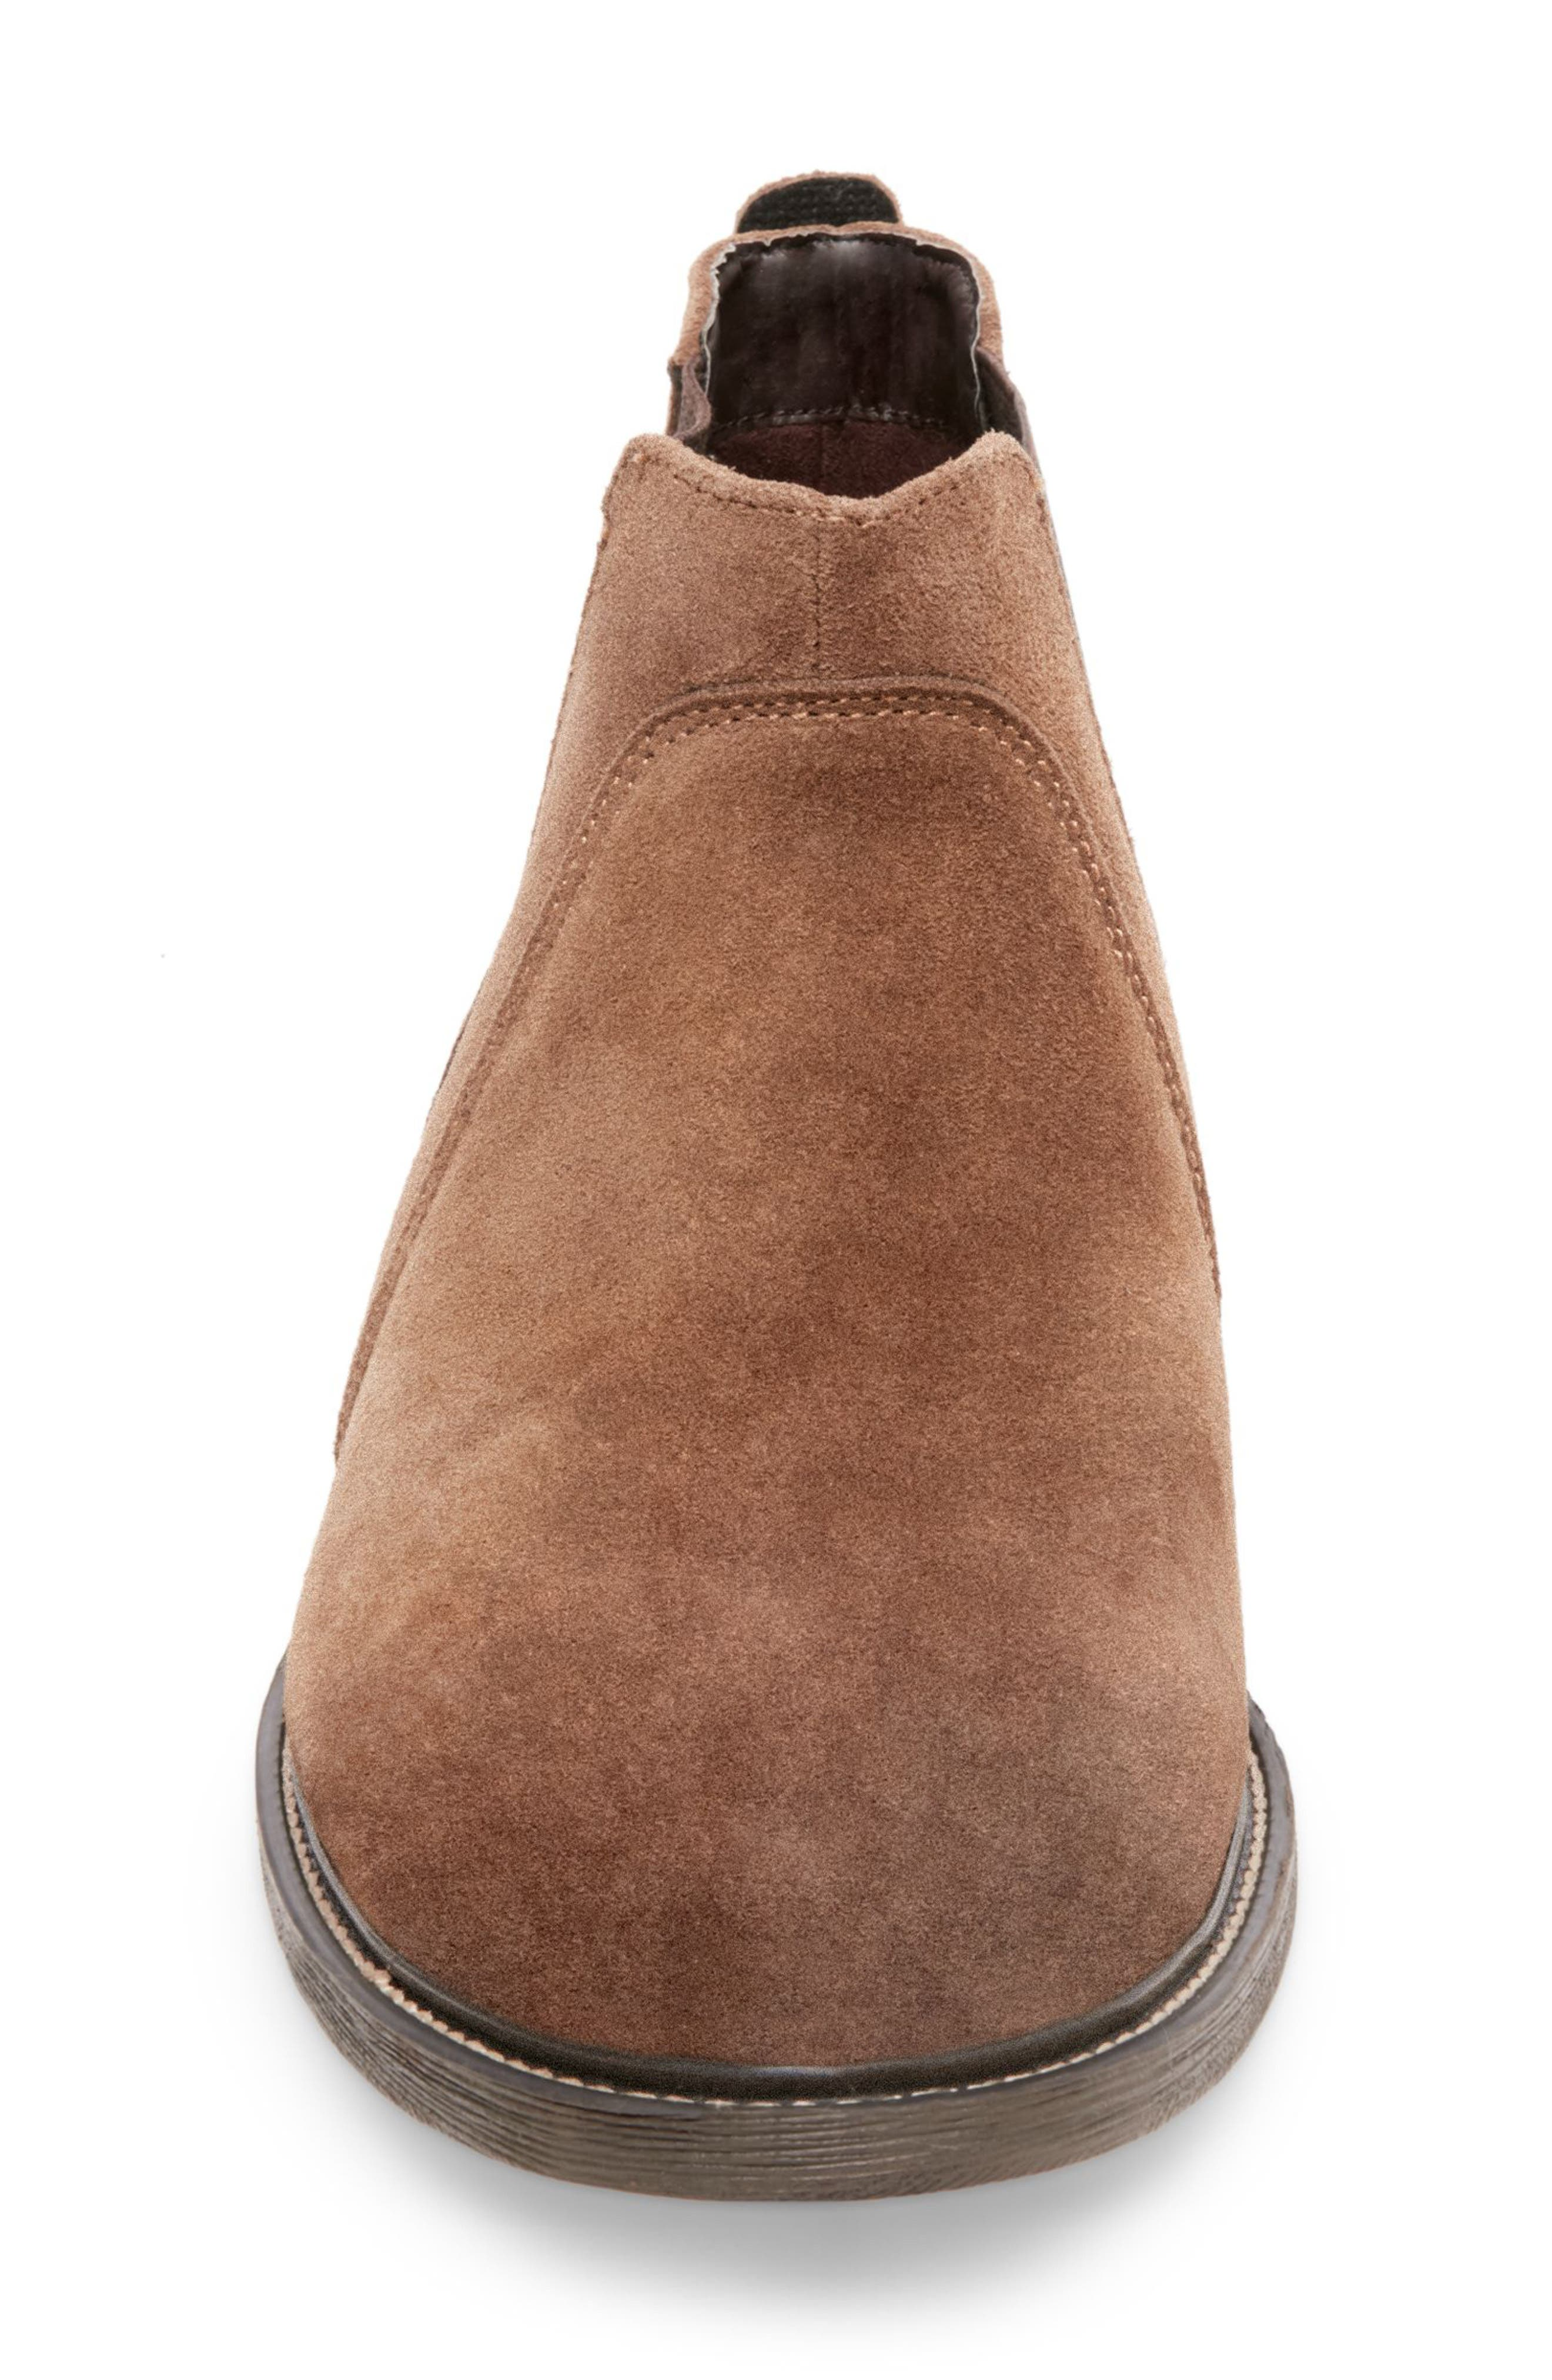 Tampa Chelsea Boot,                             Alternate thumbnail 3, color,                             CAMEL SUEDE